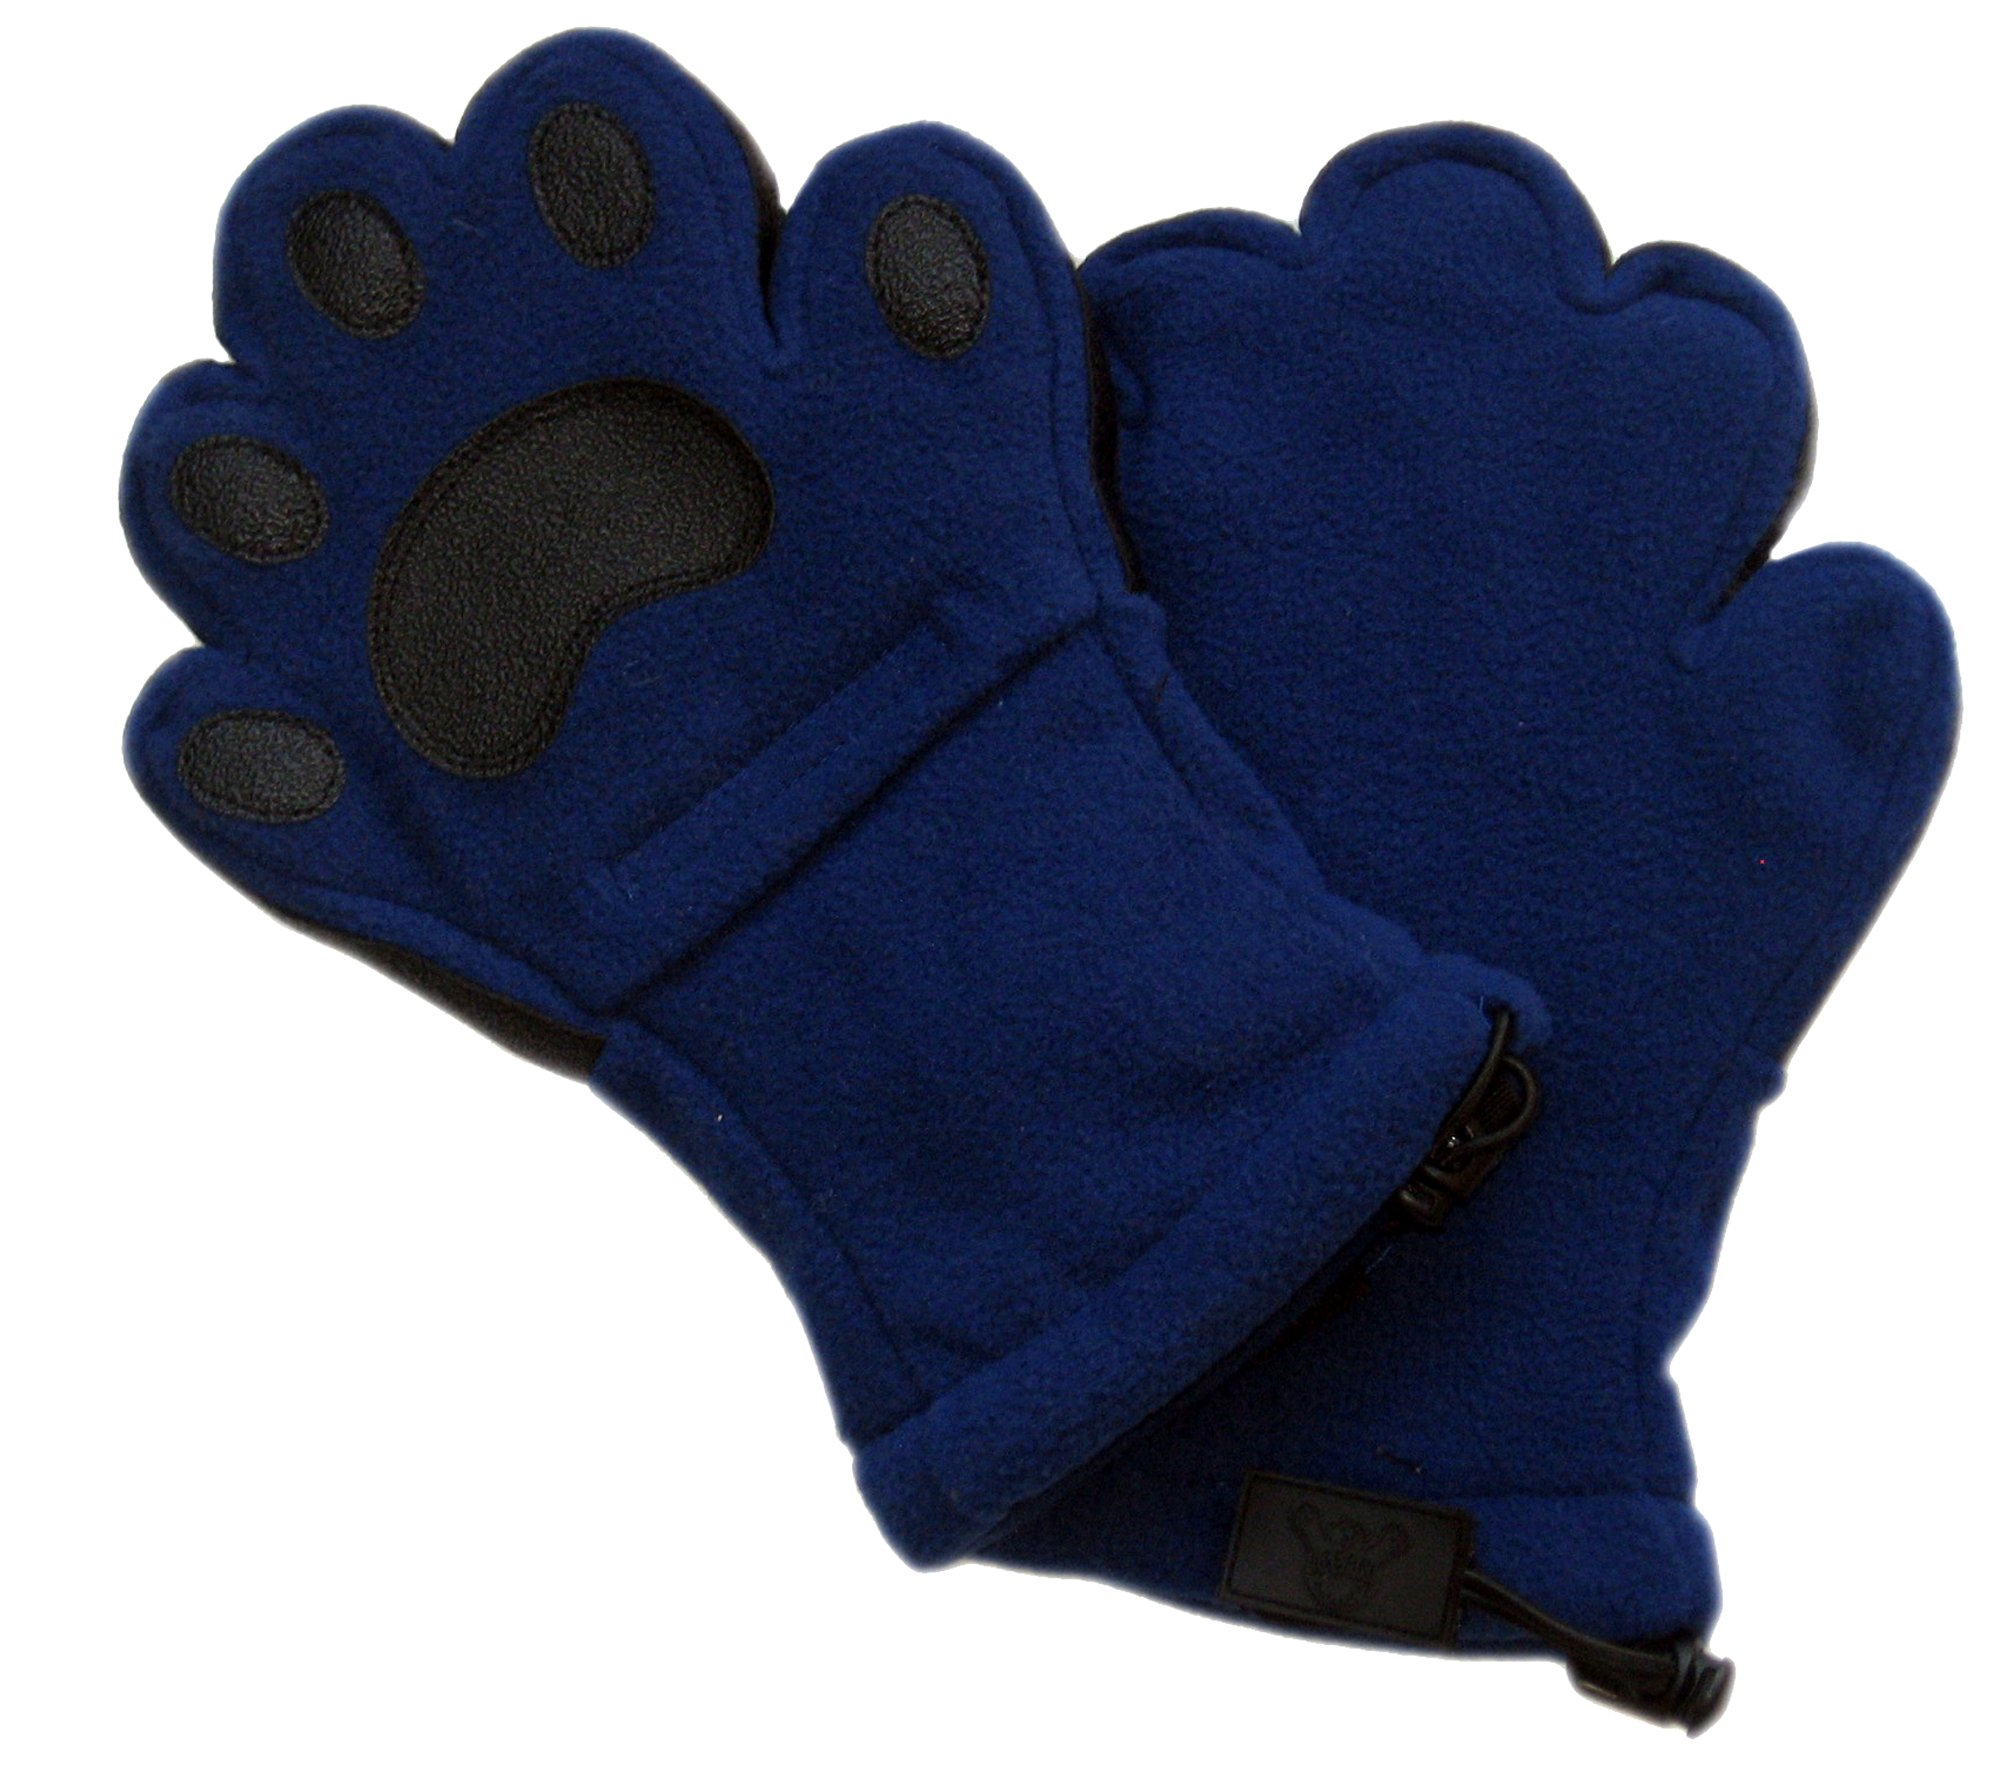 BearHands ThinsulateTM Fleece Mittens - with handy flap opening for when fingers are needed! (Adult Large) - Navy Blue